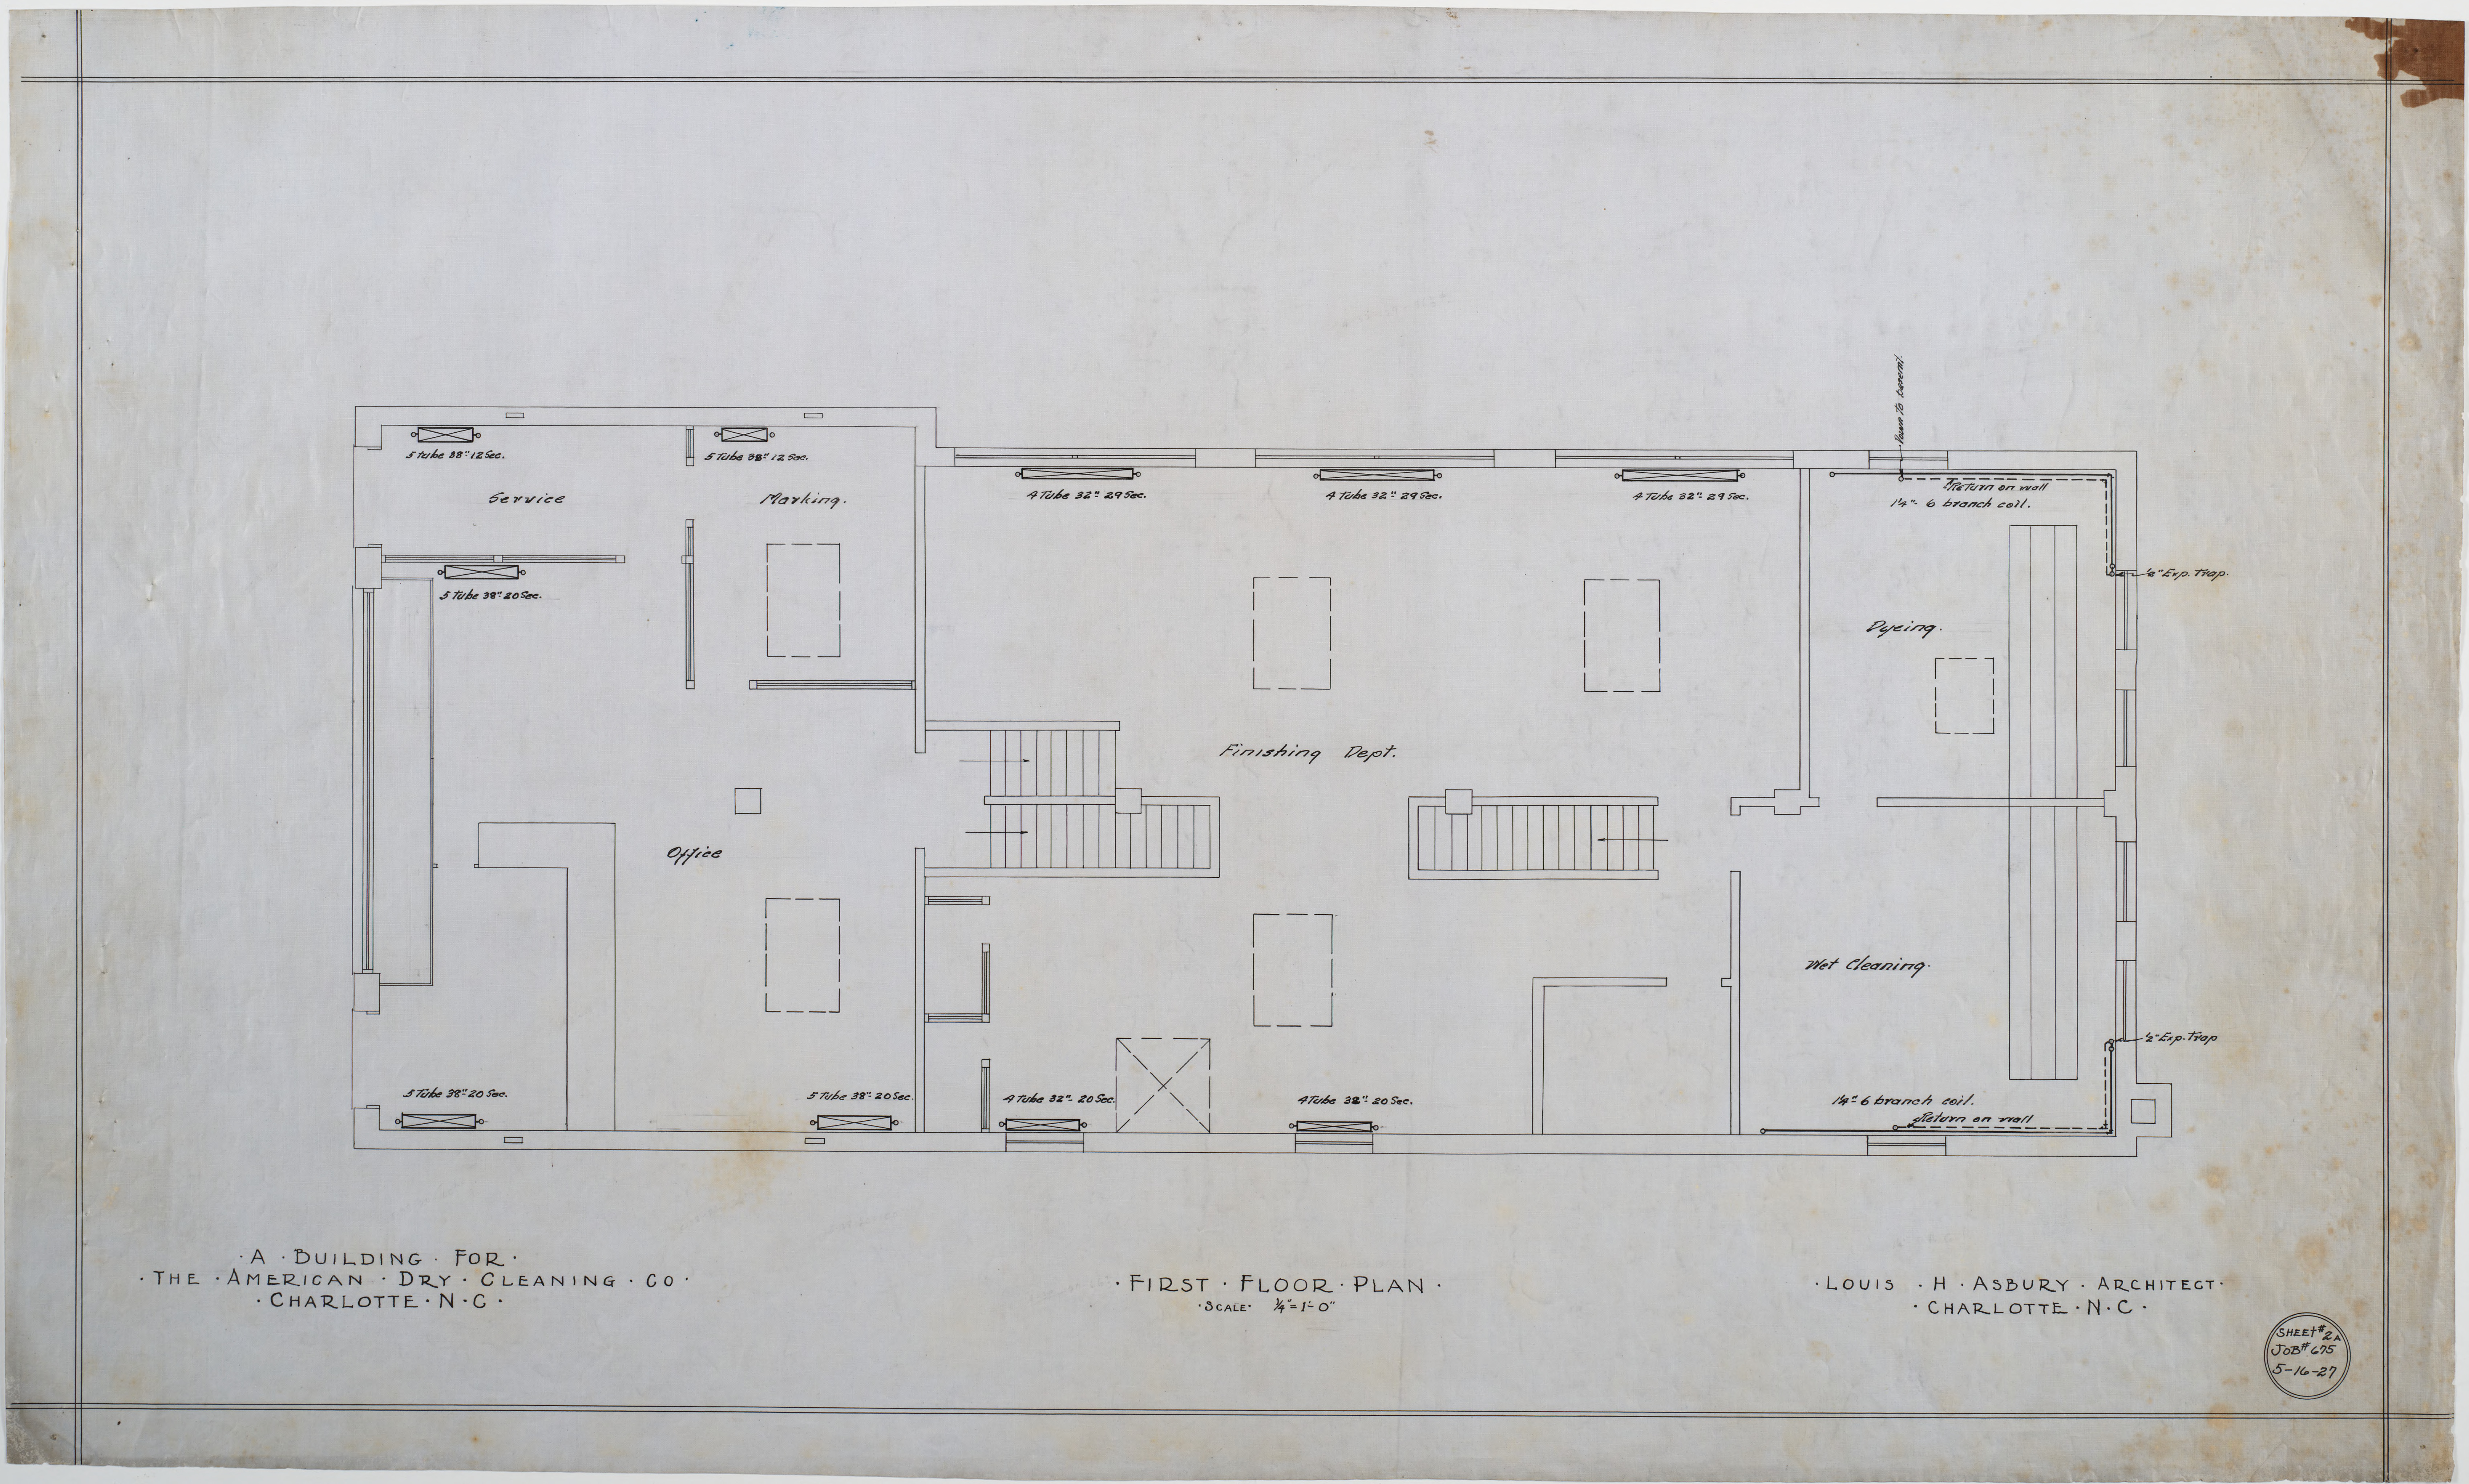 First floor plumbing plan